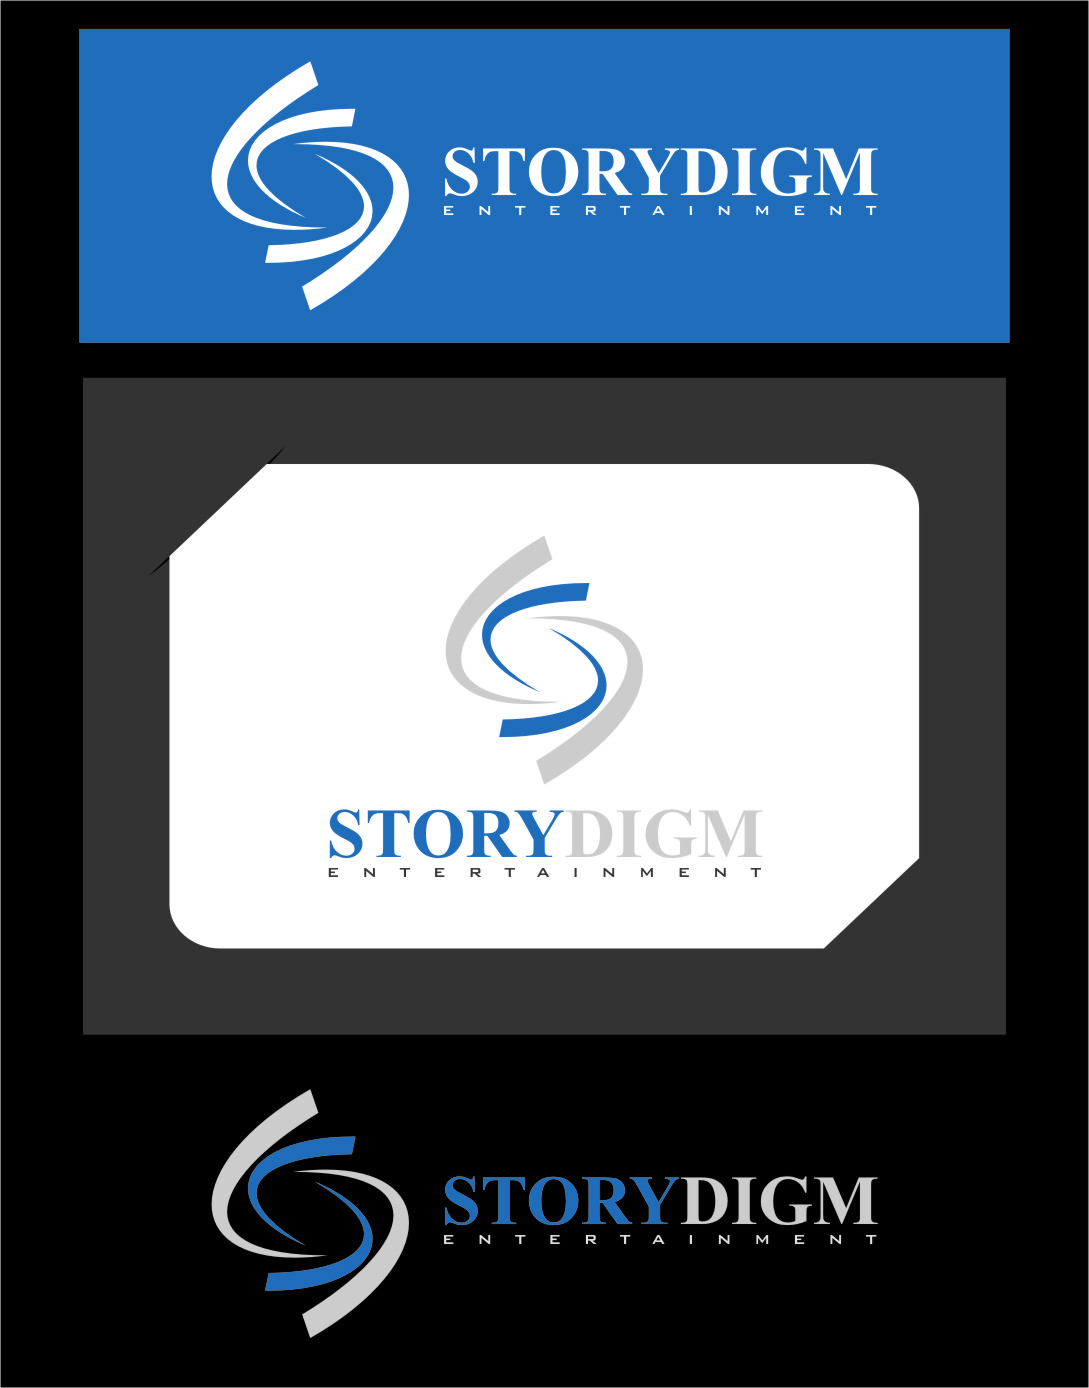 Logo Design by Ngepet_art - Entry No. 104 in the Logo Design Contest Inspiring Logo Design for Storydigm Entertainment.